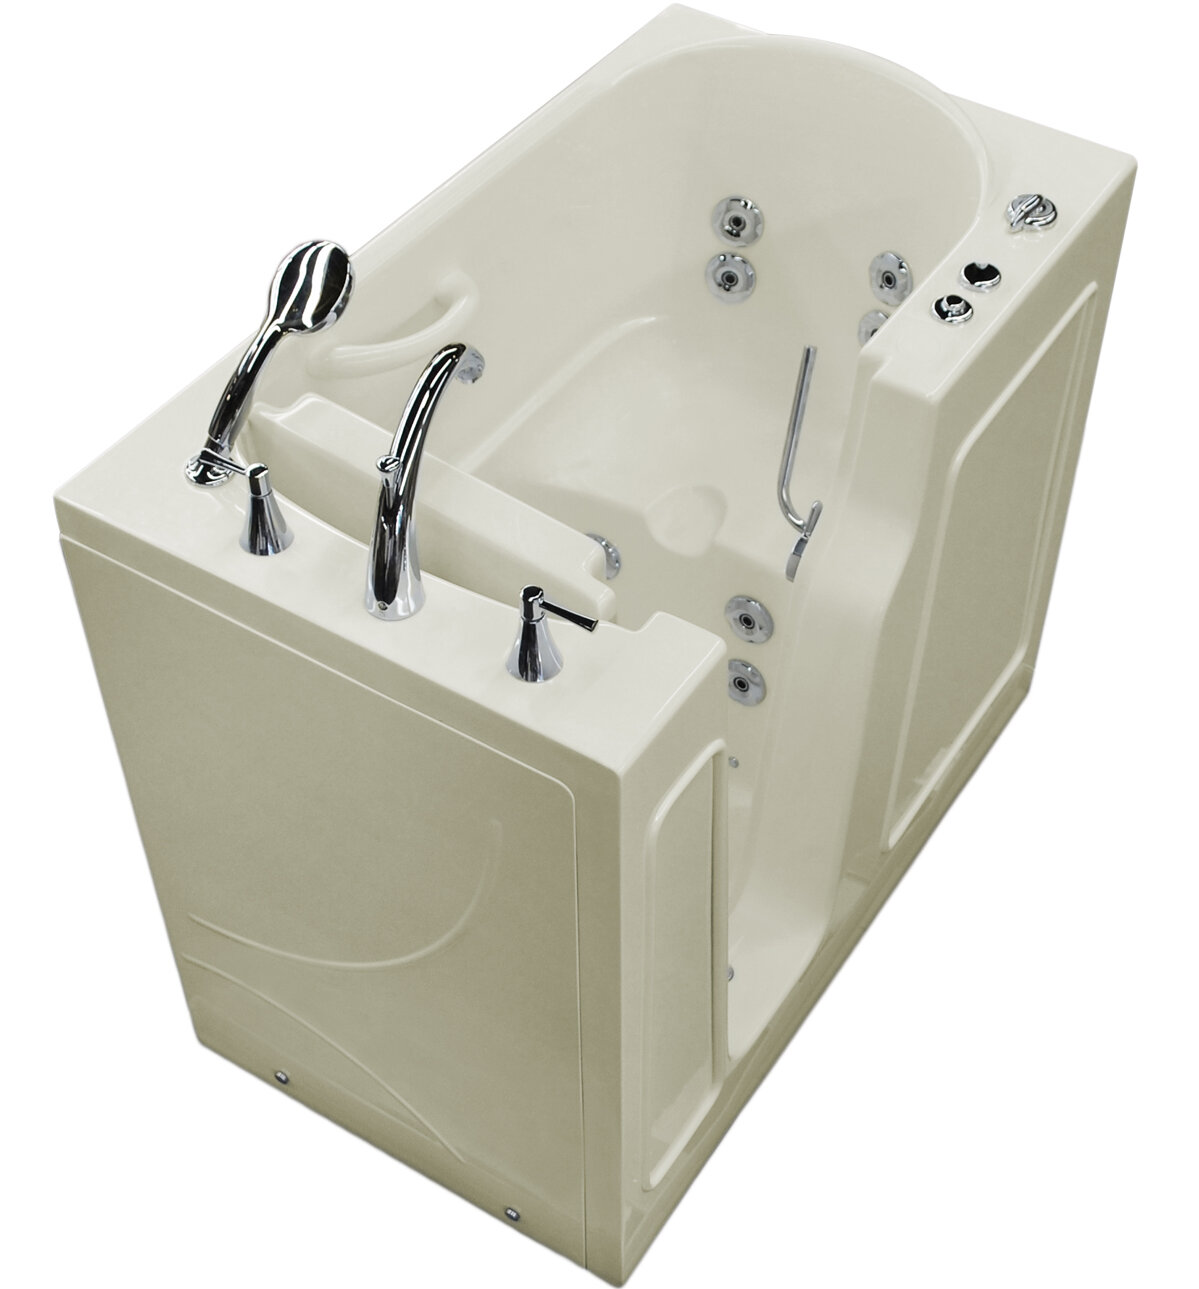 Therapeutic tubs prairie 46 x 26 walk in whirlpool for Walk in tub water capacity